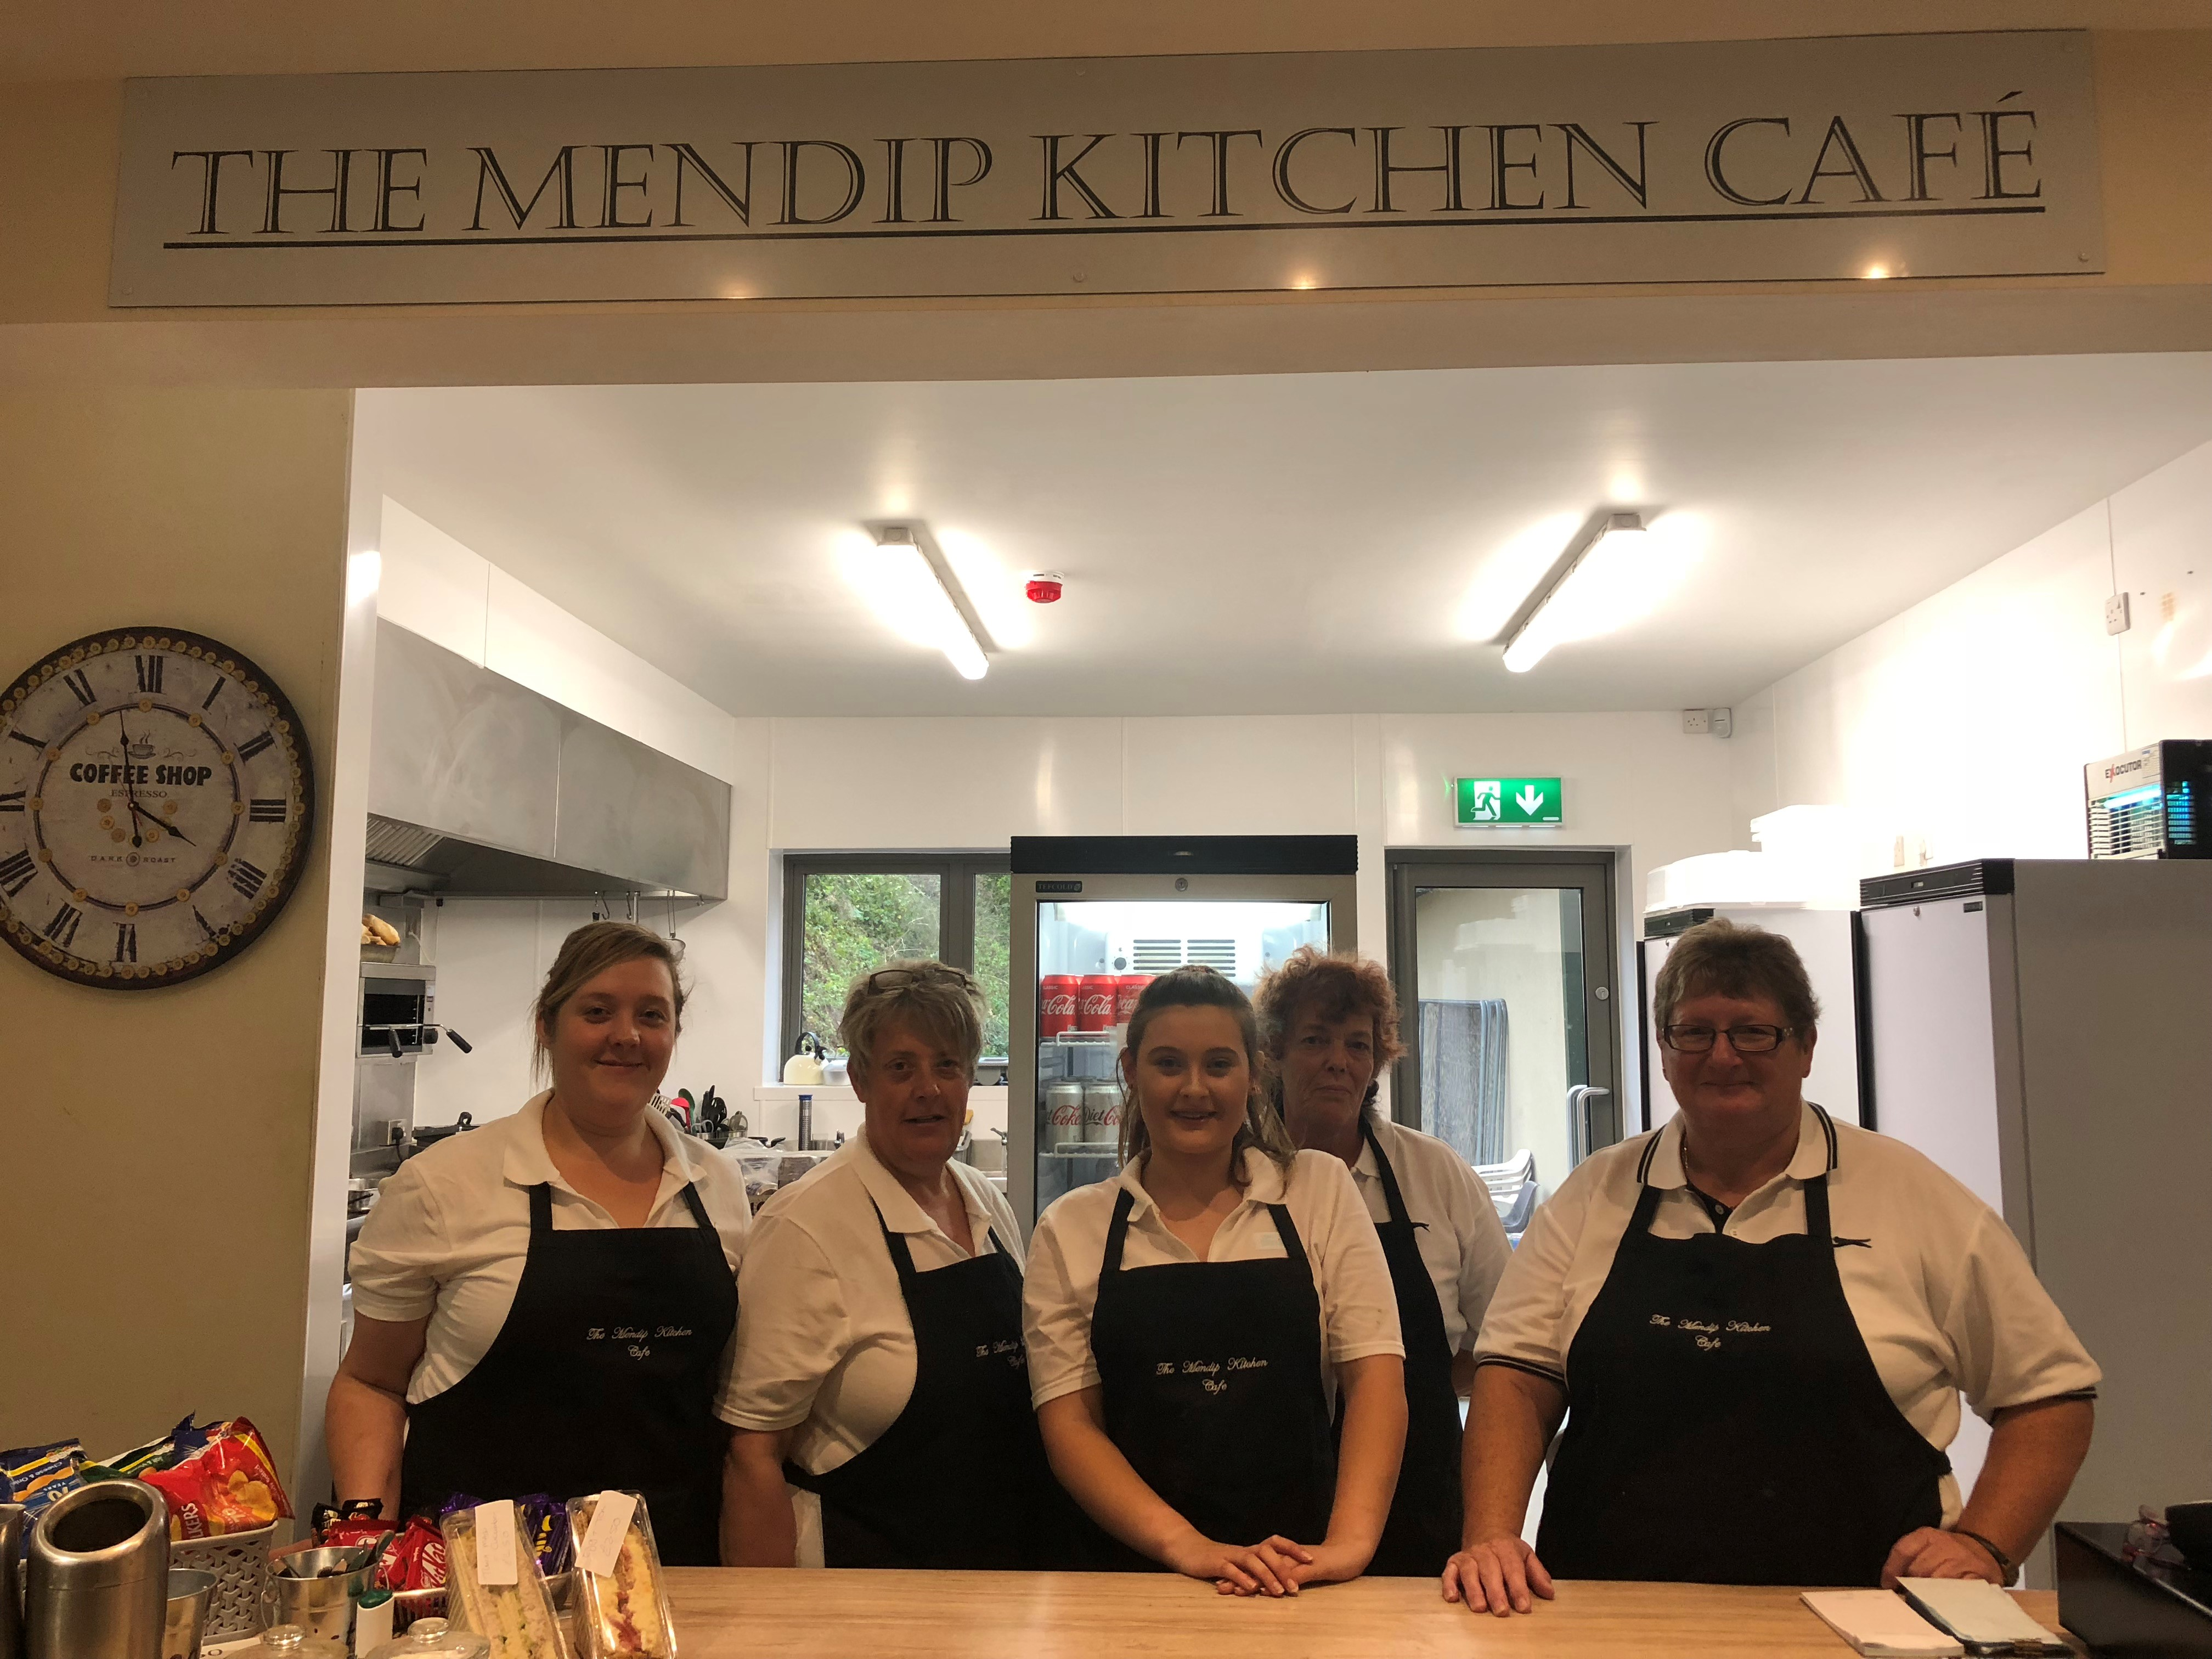 The Mendip Kitchen Café